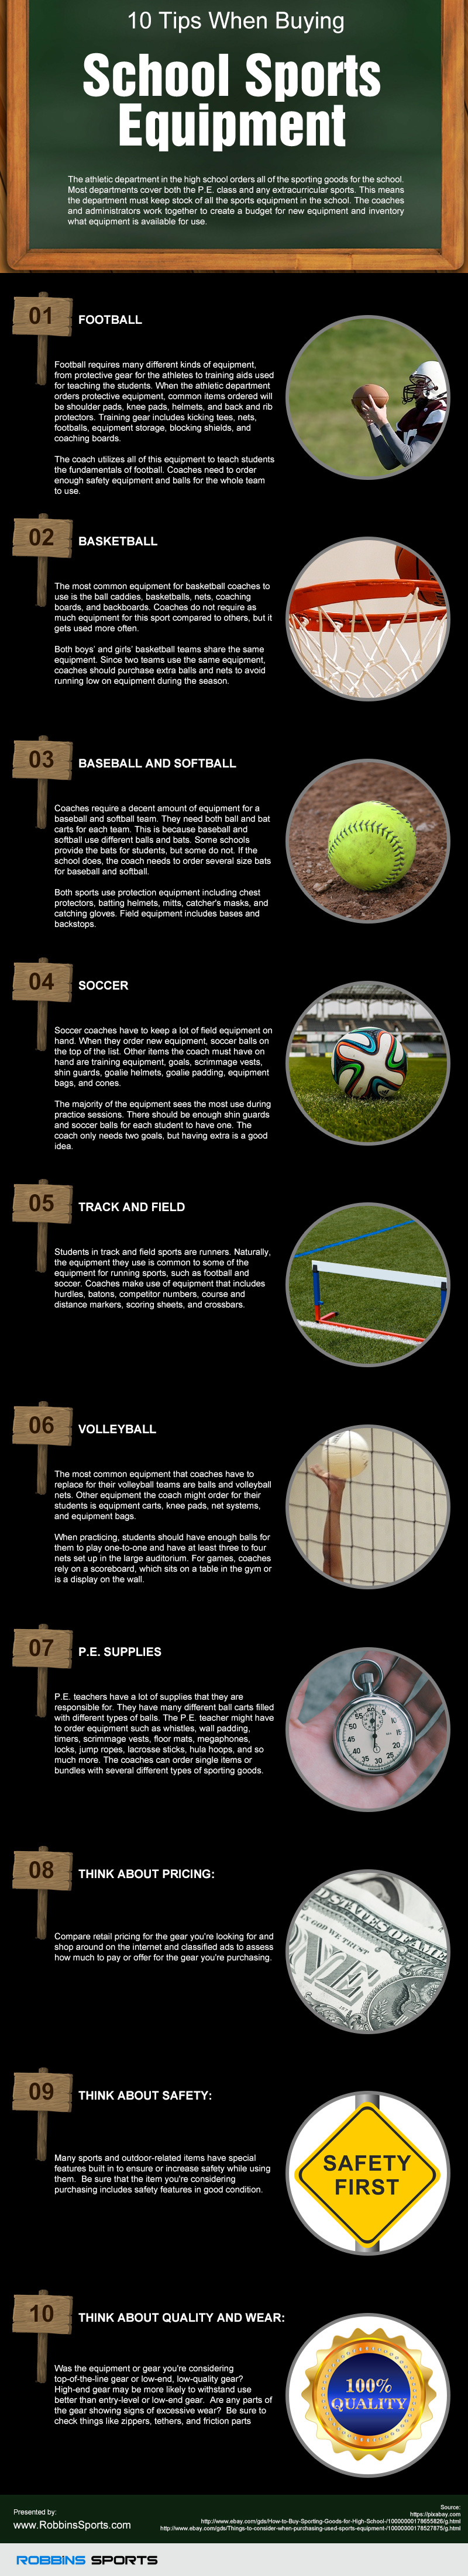 10 Tips When Buying School Sports Equipment